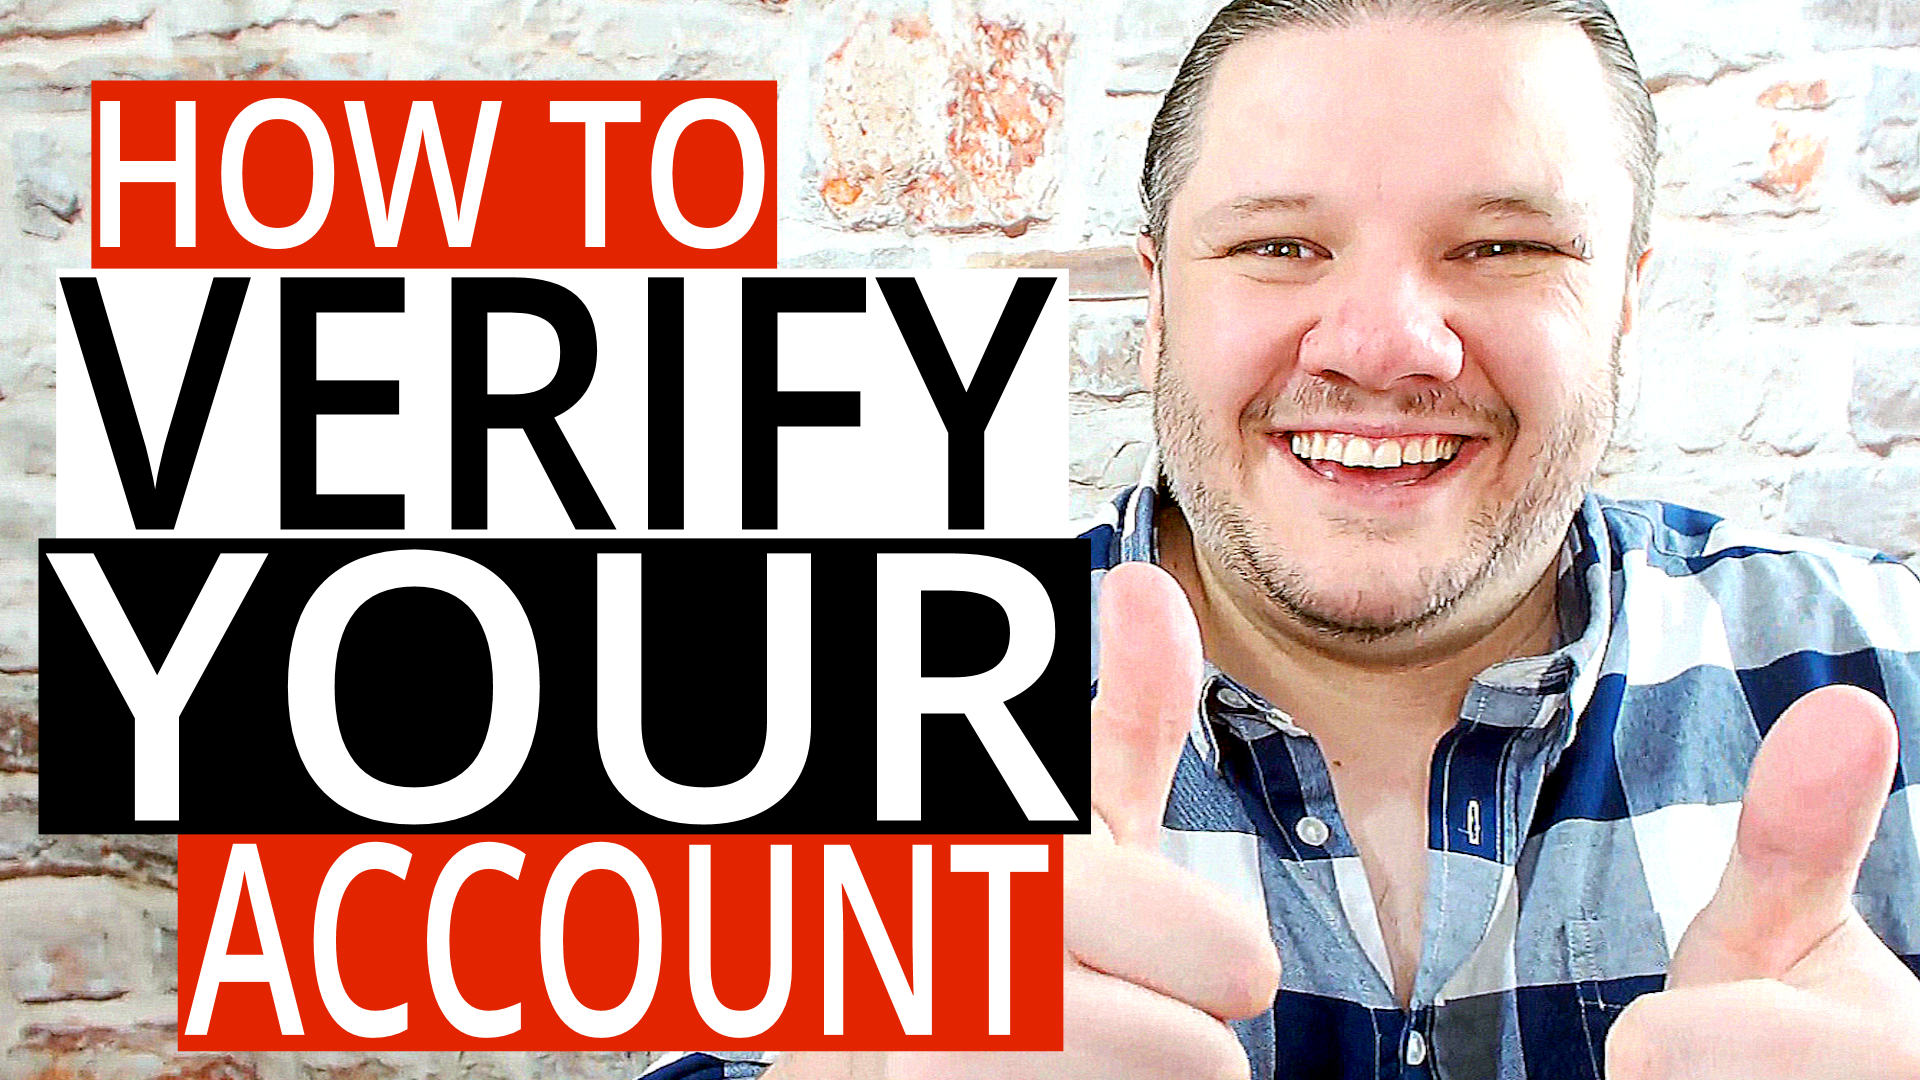 alanspicer,How to Verify Your YouTube Account,how to verify your youtube account on a phone,how to verify your youtube account on android,verify your account,verify youtube account,youtube verified,youtube account verify,youtube account verified,Verify Your YouTube Account,how to verify your youtube channel,verify your youtube channel,verify youtube channel,verify youtube channel 2018,verify,how to,youtube,verify youtube,verification,step by step,youtube verify